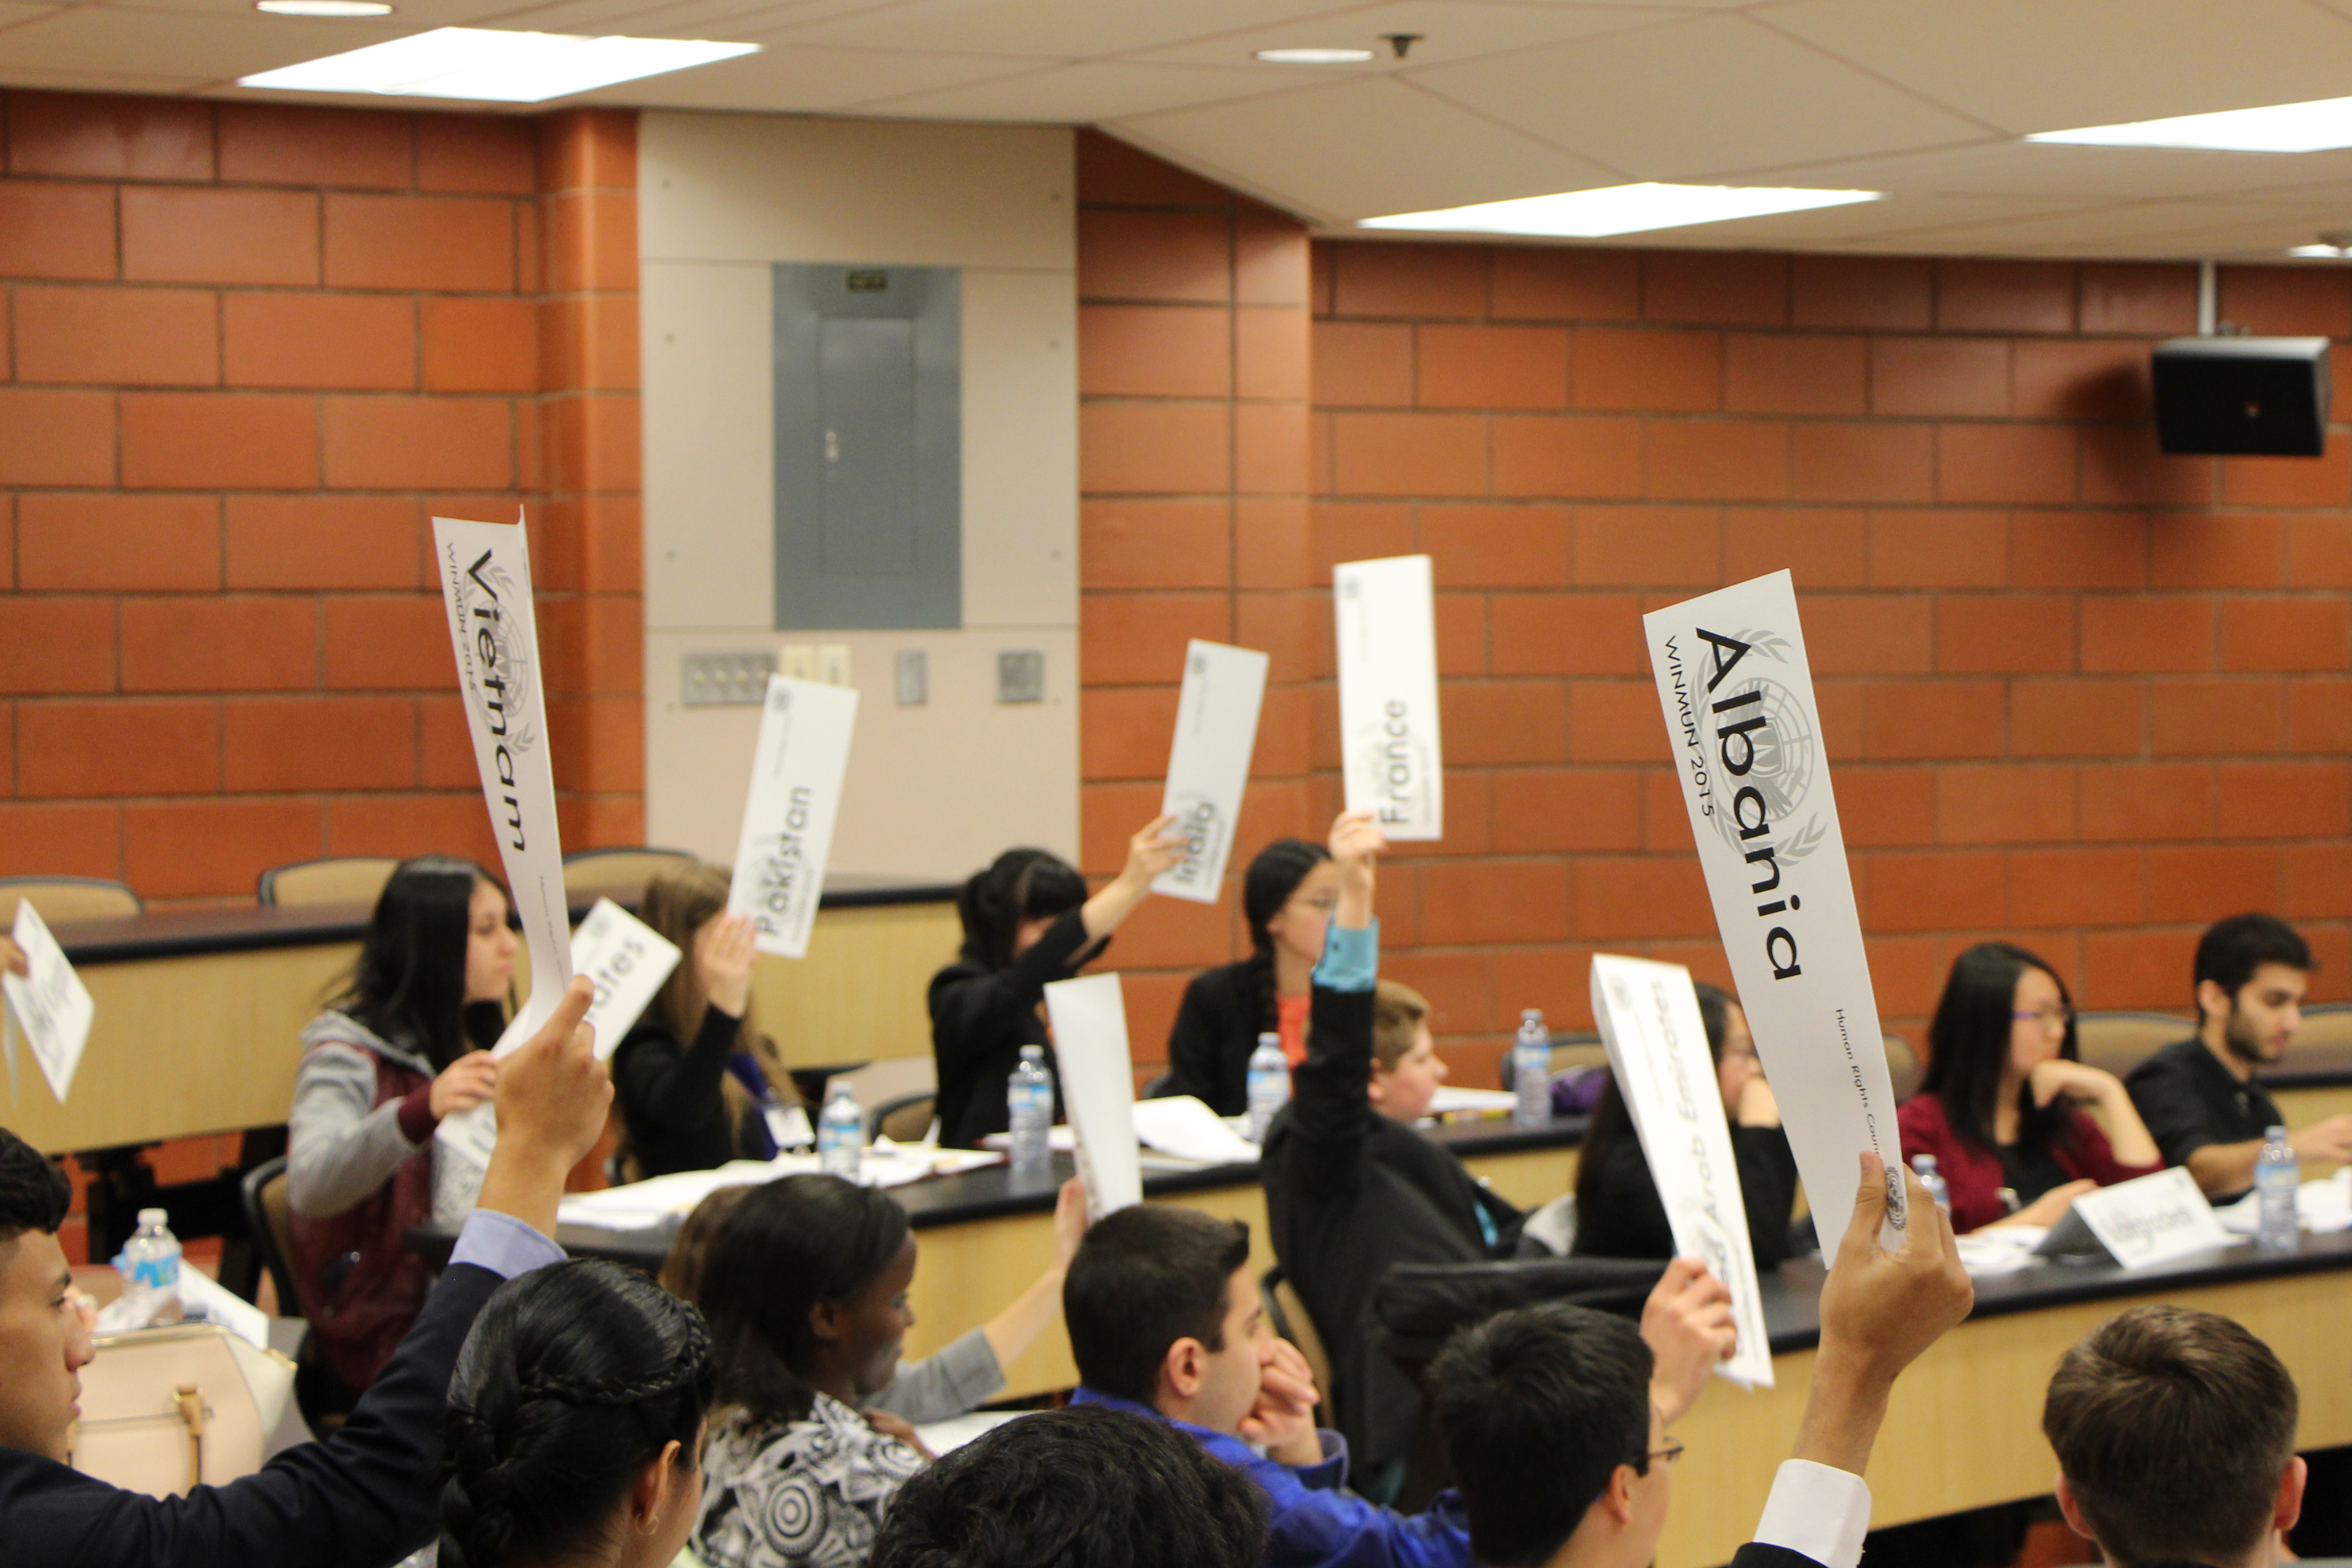 Students engaged in debates on global issues during a model UN conference organized by the University of Windsor Model United Nations Club (WINMUN) and the Political Science department.